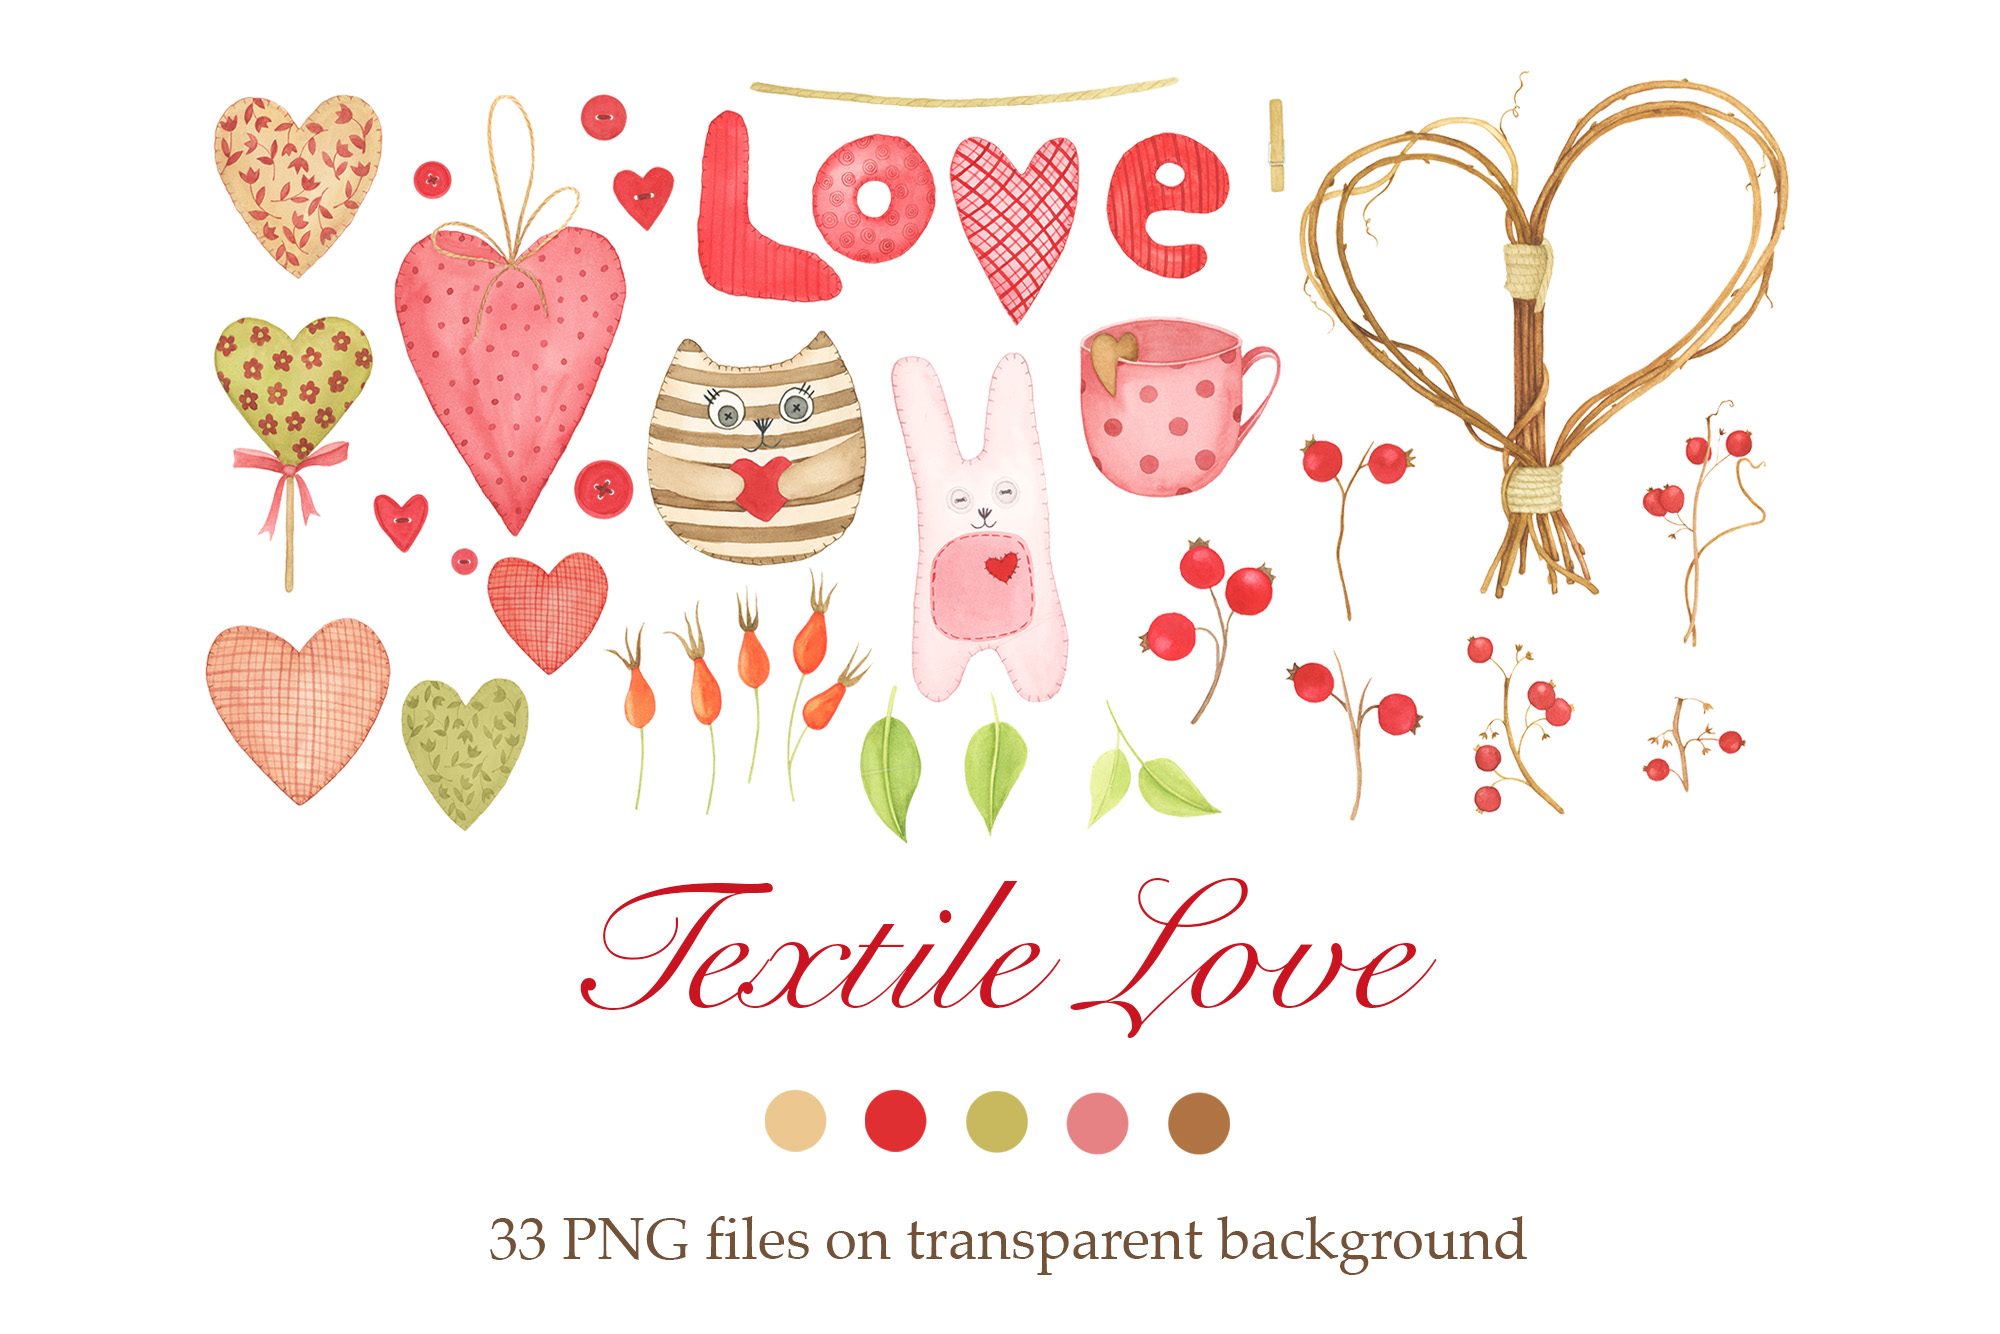 Textile Love example image 1